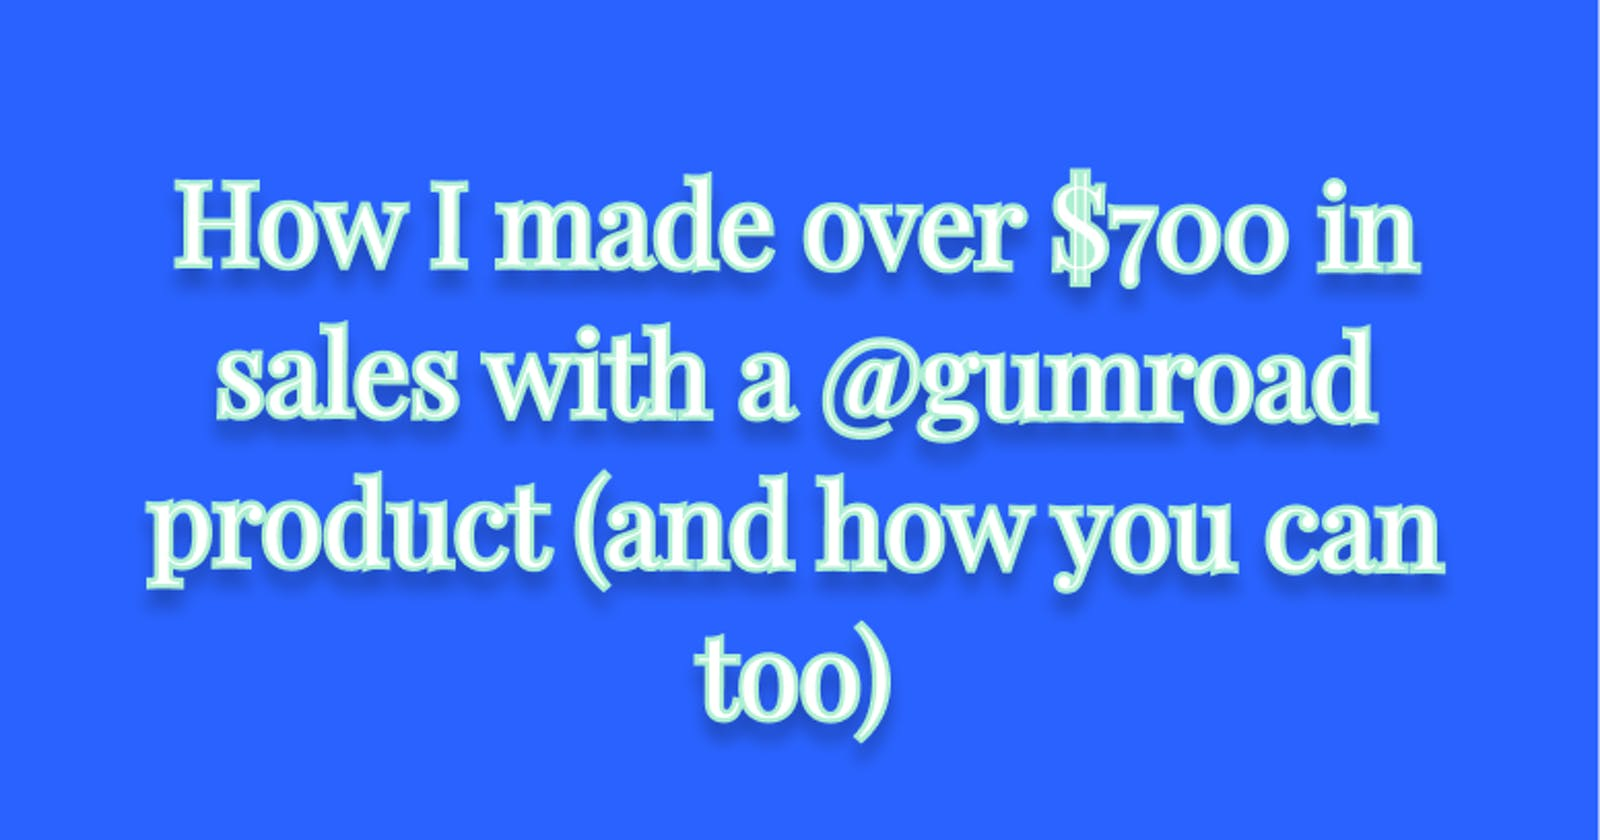 How I made over $700 in sales with a Gumroad product (and how you can too)